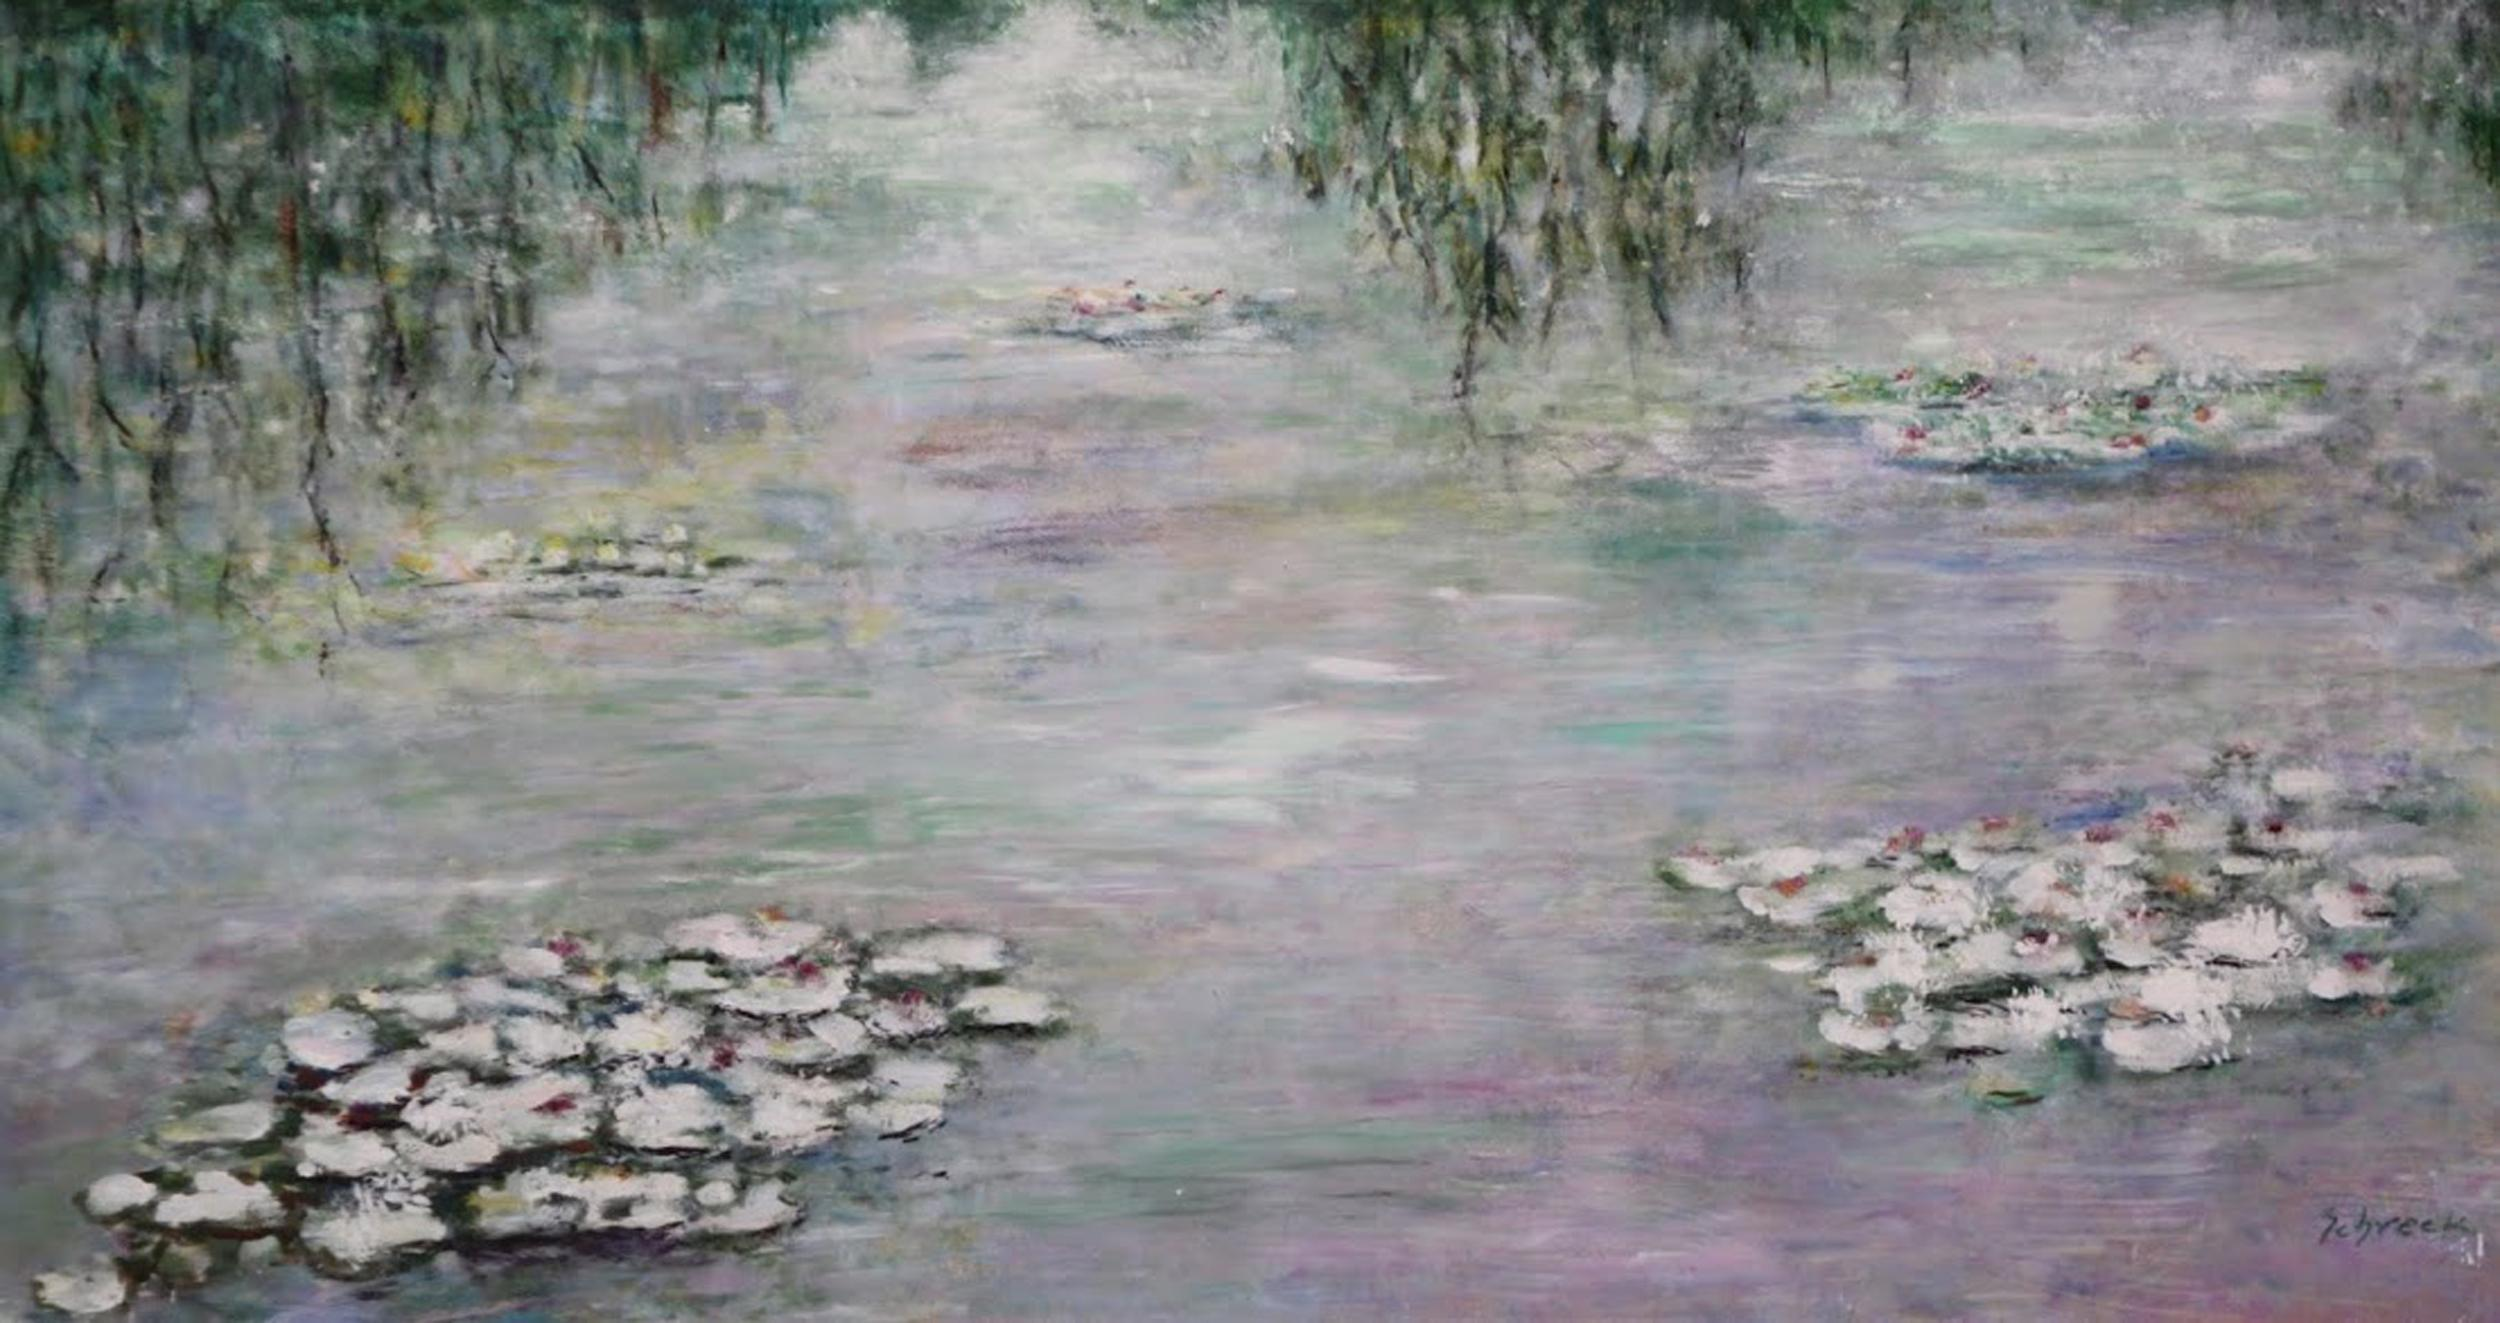 Michael Schreck, Waterlilies No. 1, Acrylic Painting